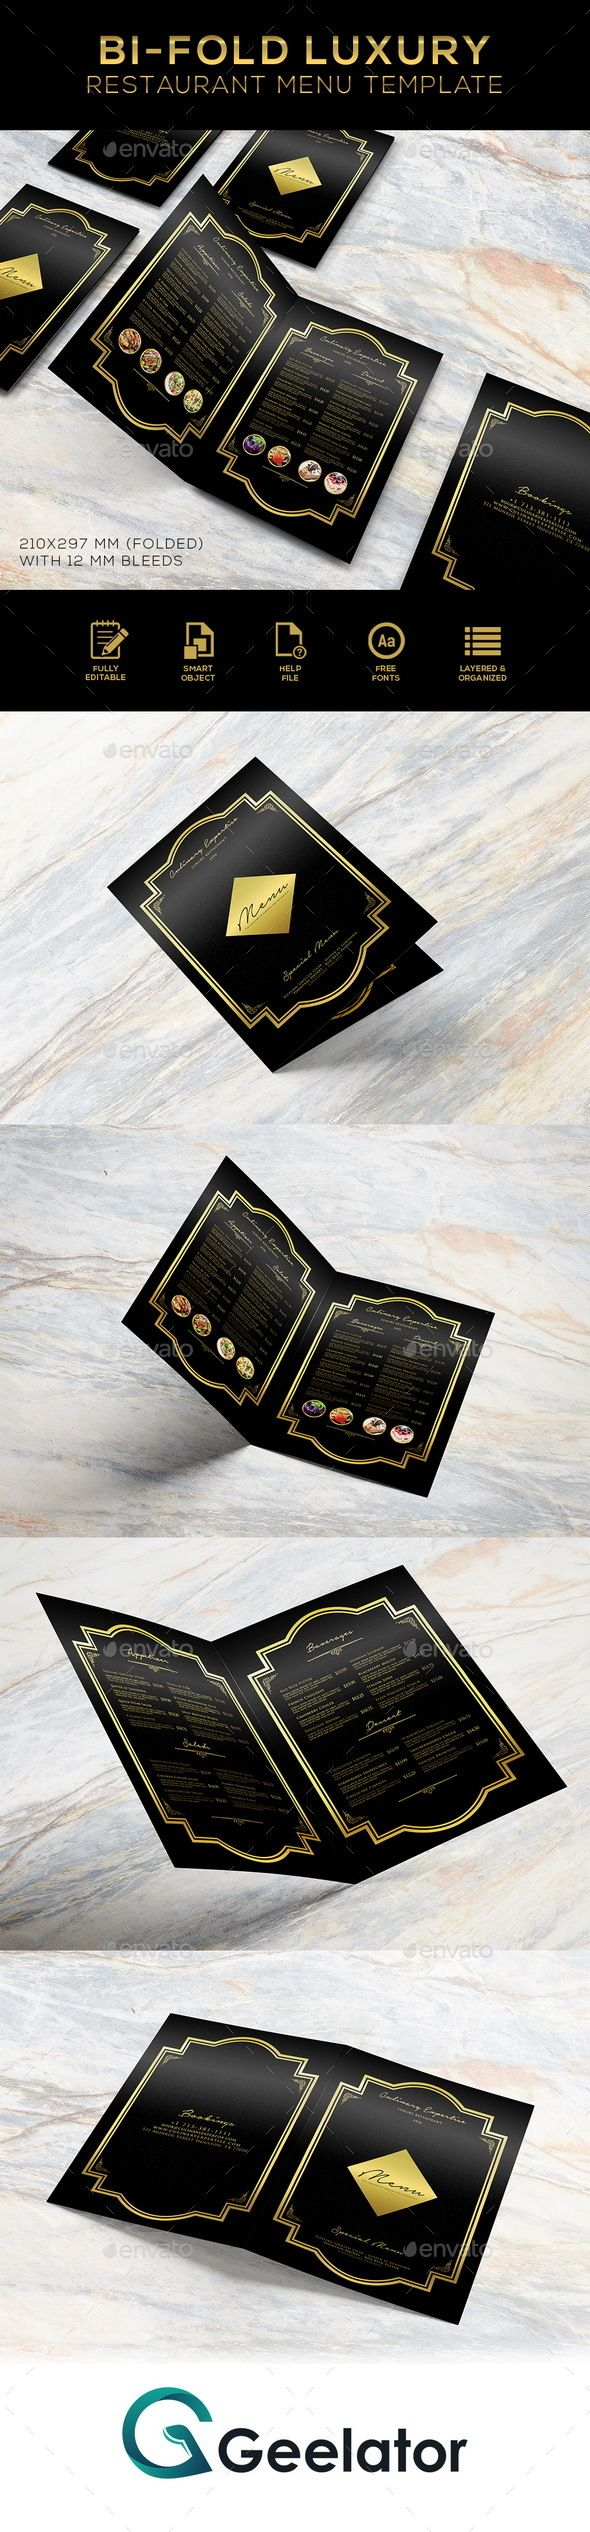 Bi-Fold Luxury Restaurant Menu Template - #fastfood #truckfood #streetfood #food #restaurant #delicious #shop #seafood #gourmet #luxury #menu #foodmenu #brochure #brochuremenu #eat #dinner #breakfast #lunch #homemade #cafe #pub #bar #restaurantdesign #restaurantmenu #salad #appetizer #nusantara #rendang #indonesia #saltbae